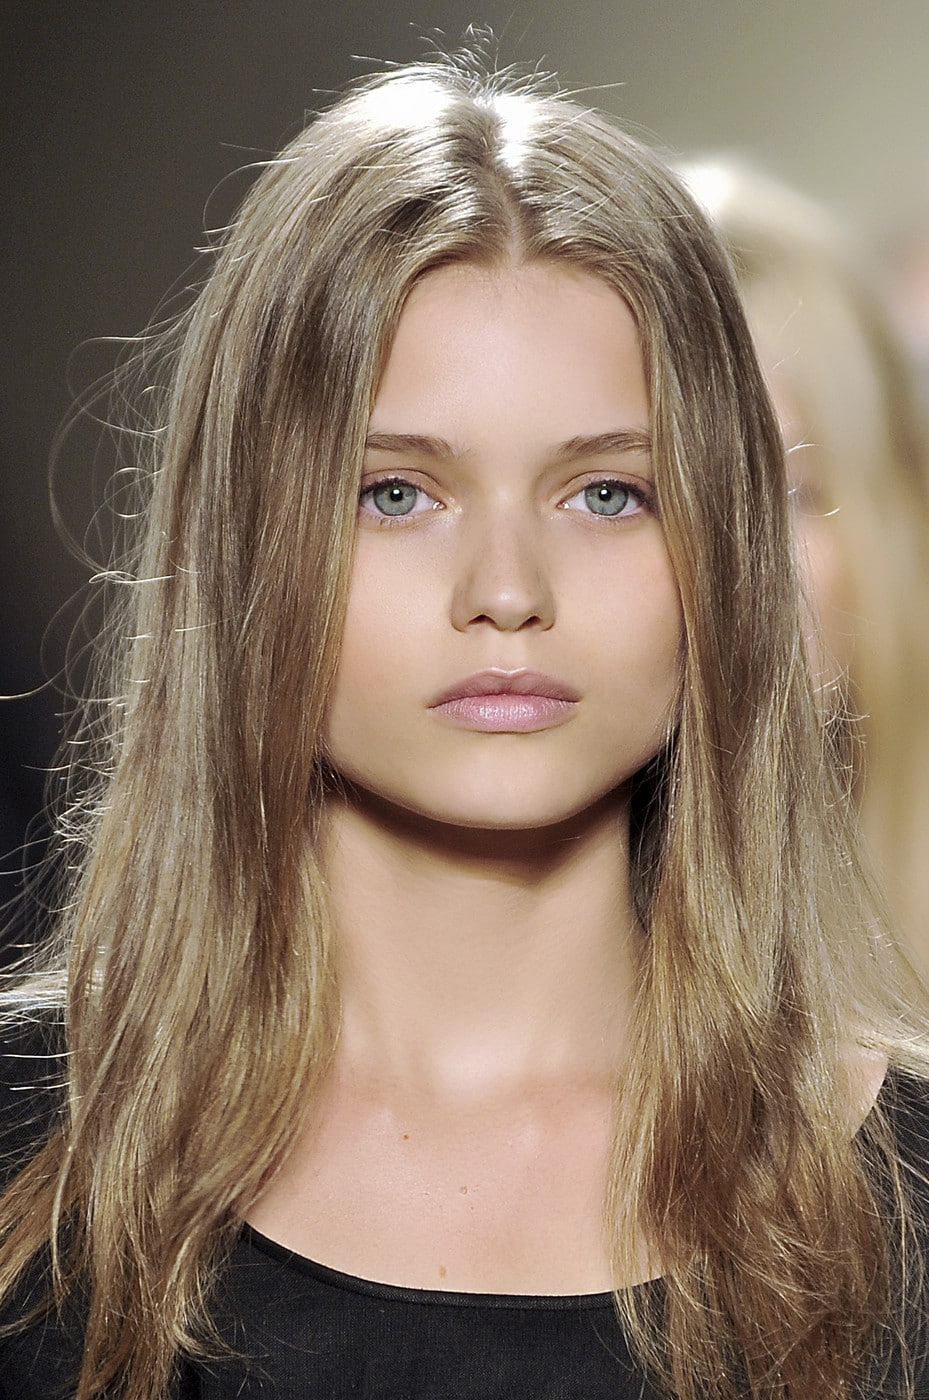 The 30-year old daughter of father Kim Kershaw and mother(?), 182 cm tall Abbey Lee Kershaw in 2018 photo